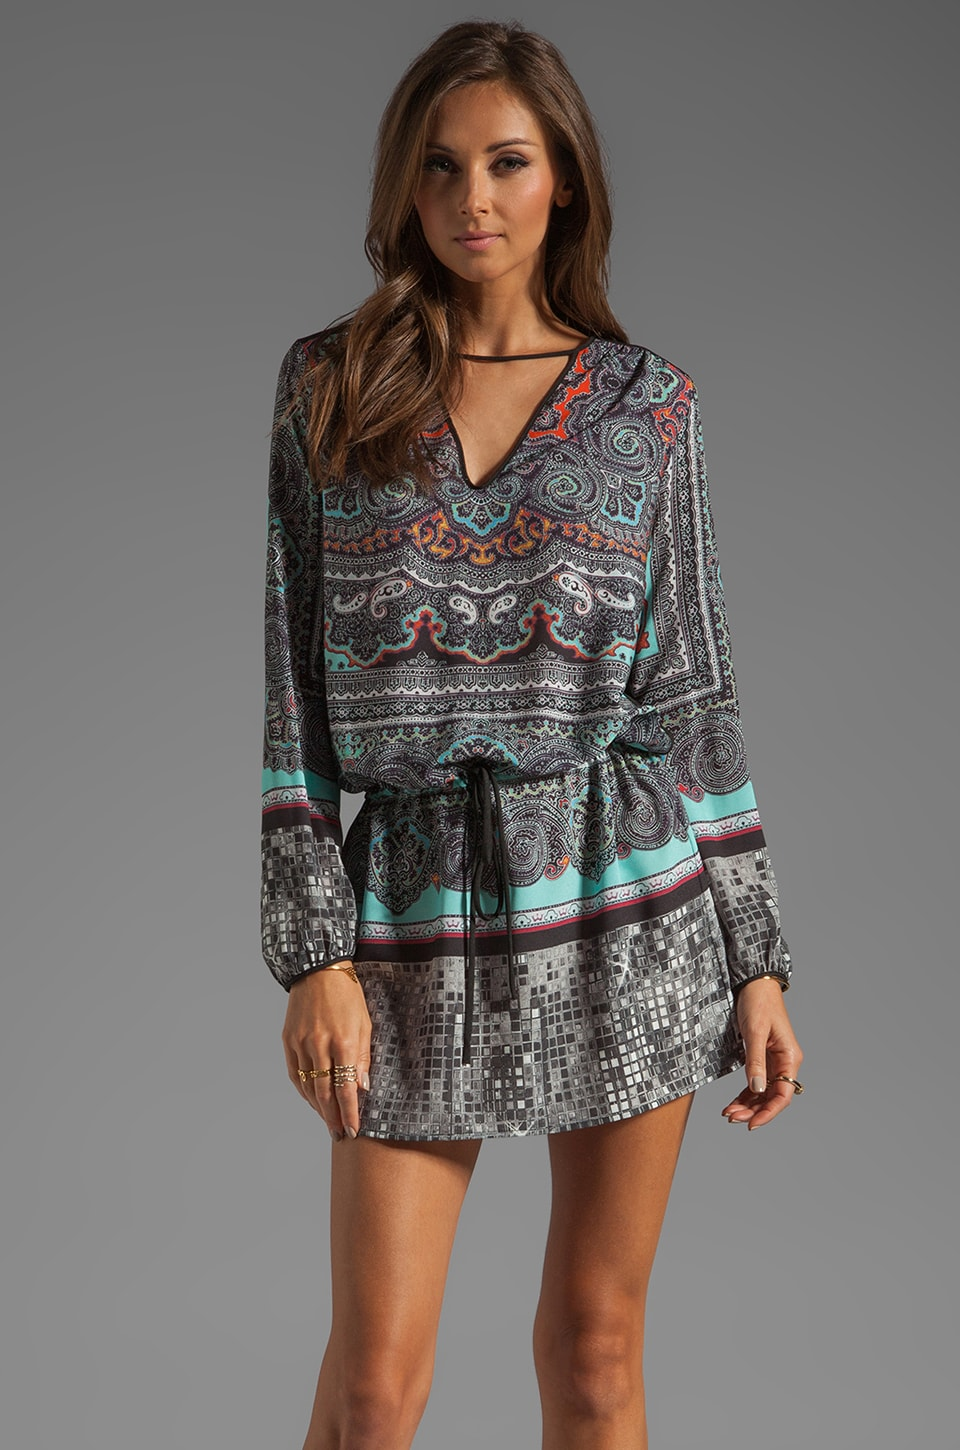 Clover Canyon Paisley Disco Dress in Multi